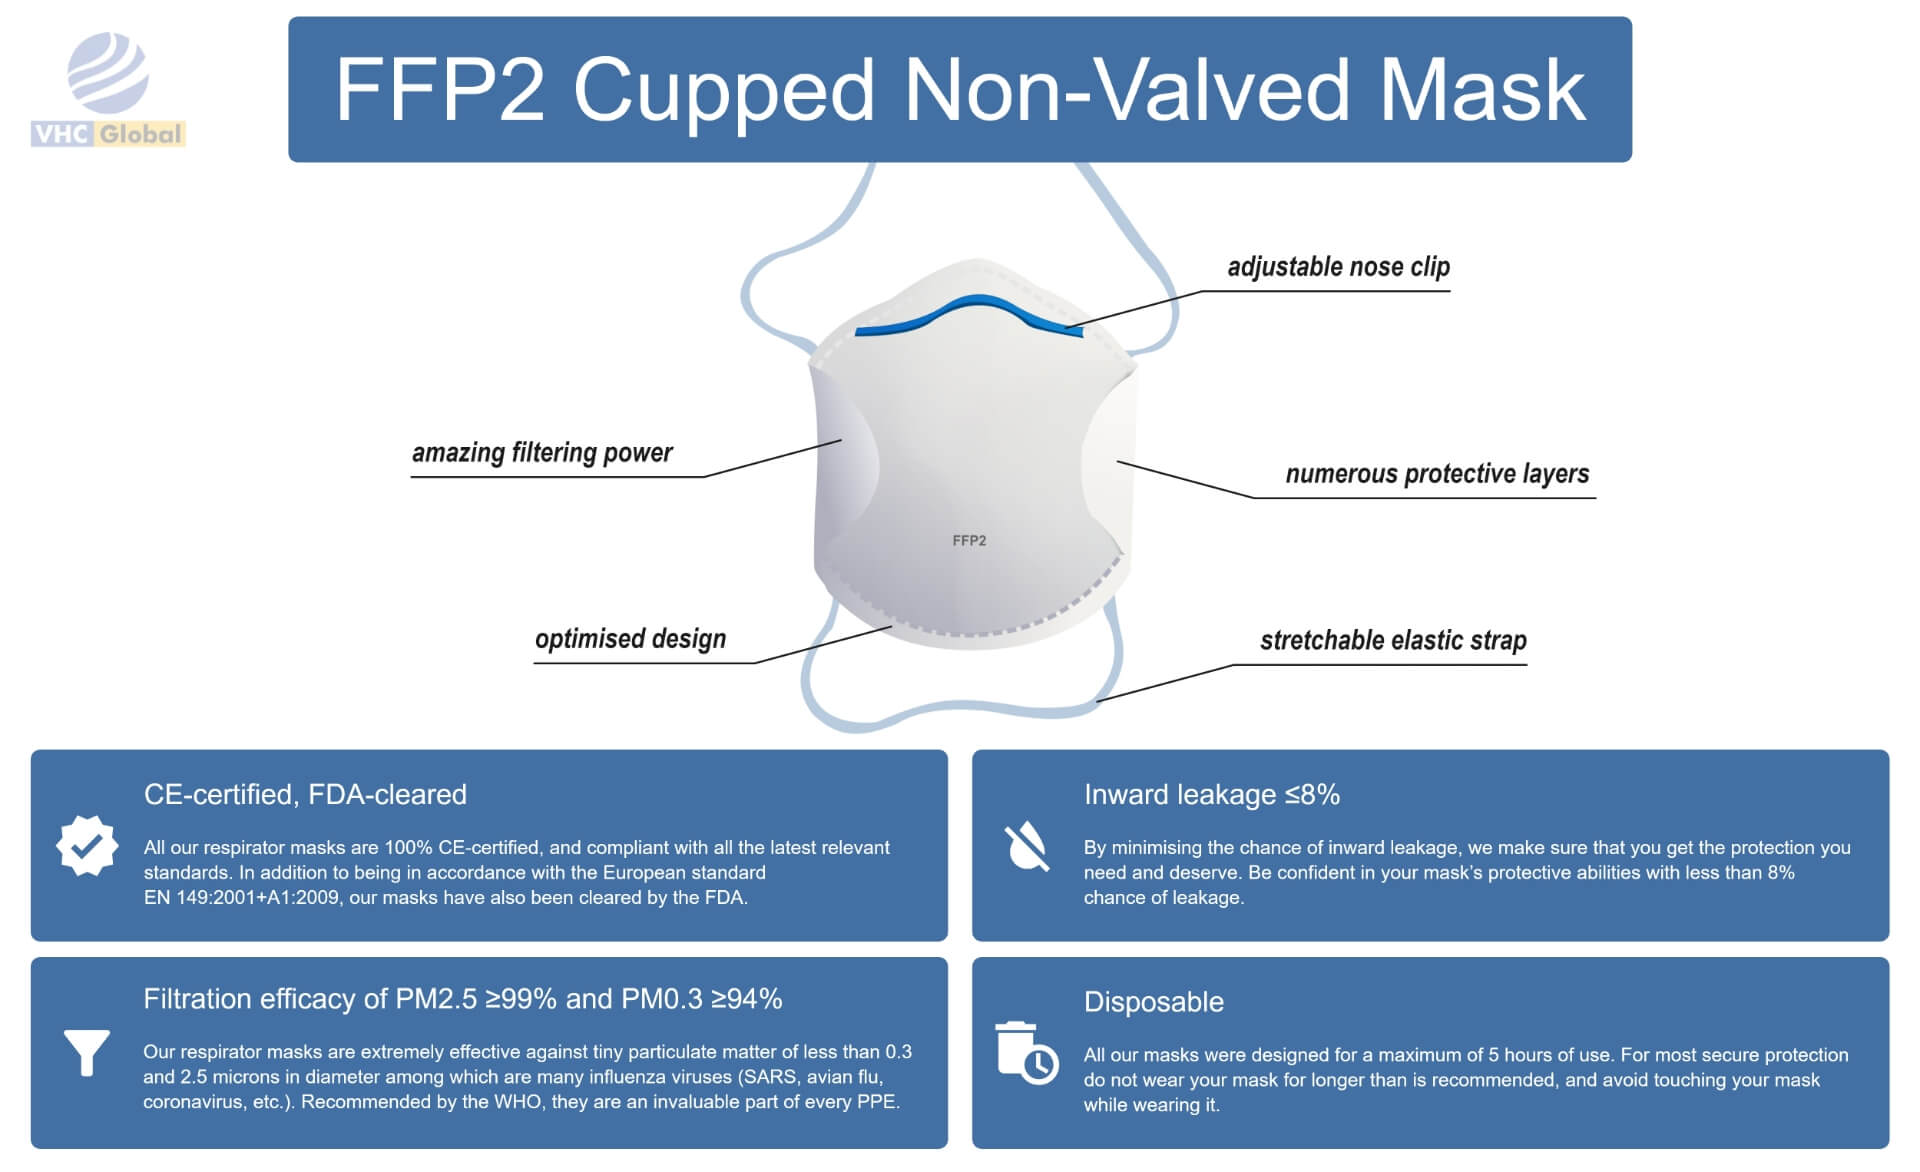 Infographic for the FFP2 face mask, FFP2 Mask Cupped Non-Valved. All details. FFP2 Respirator Mask or FFP2 Mask Cupped non-valved . Adjustable nose clip, Stethable elastic strip, numerous protective layers, optimized design, amazing filtering power, improved breathability. Inward leaking 99% and PM0.3>94%